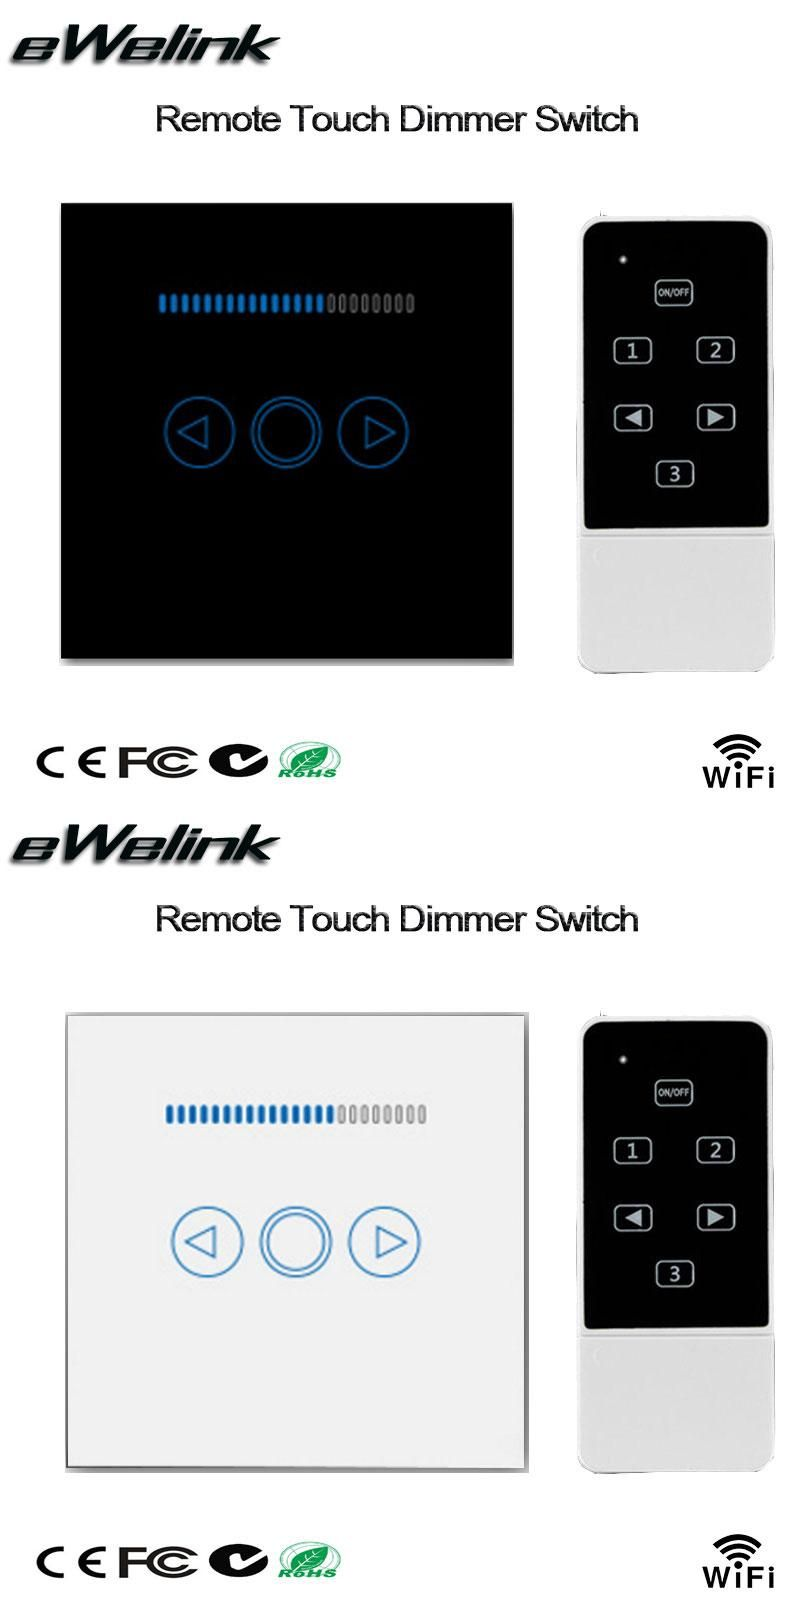 Smart Home Dimmer Smart Home Eu Wifi Dimmer Switch 220v Touch Panel Wireless Remote